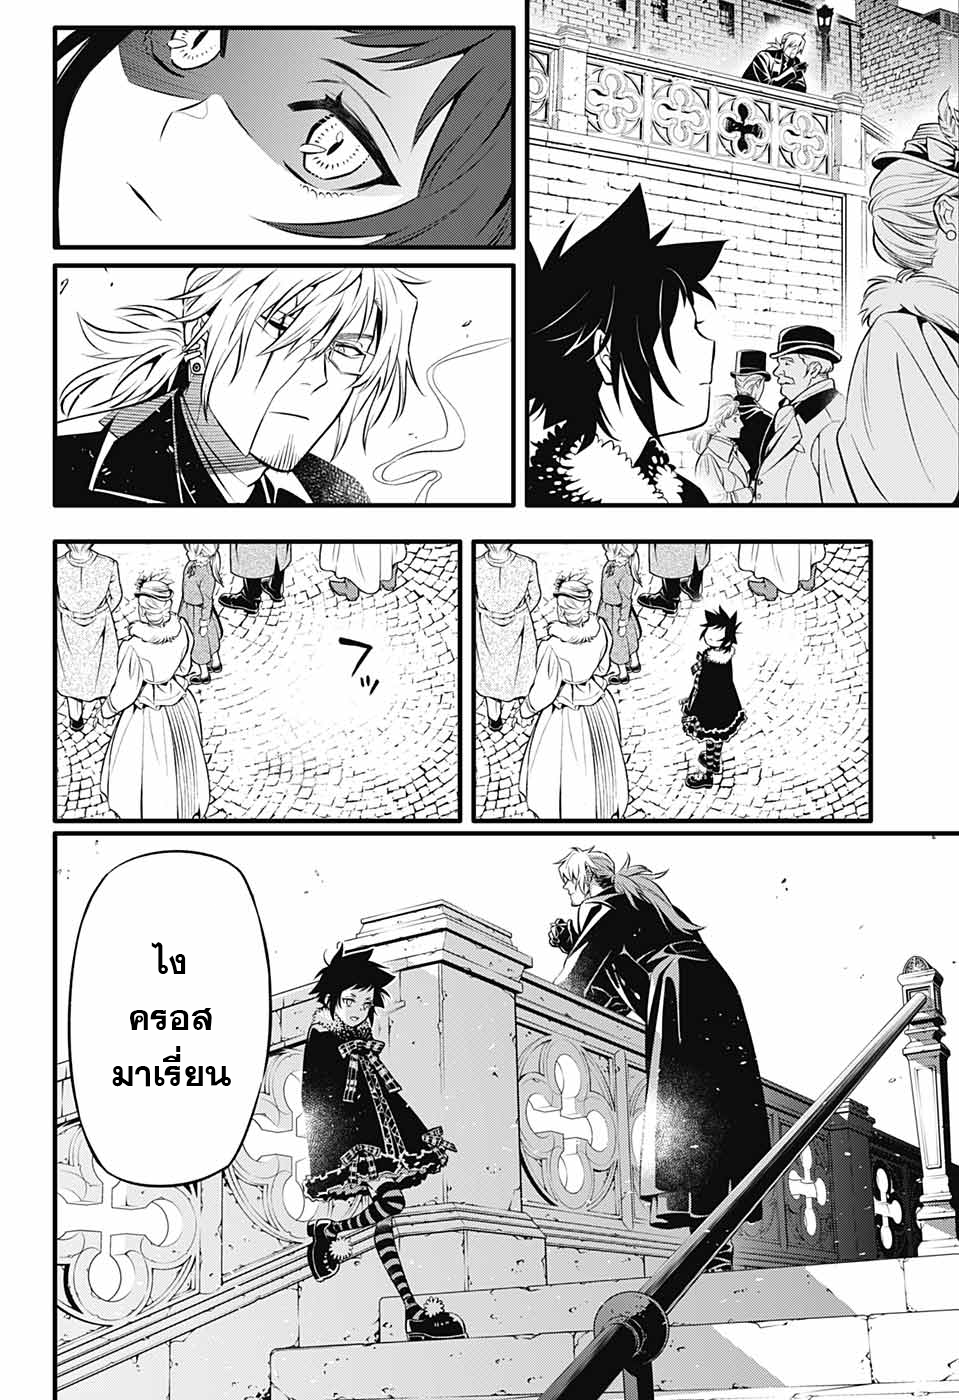 D.Gray-man 234 TH